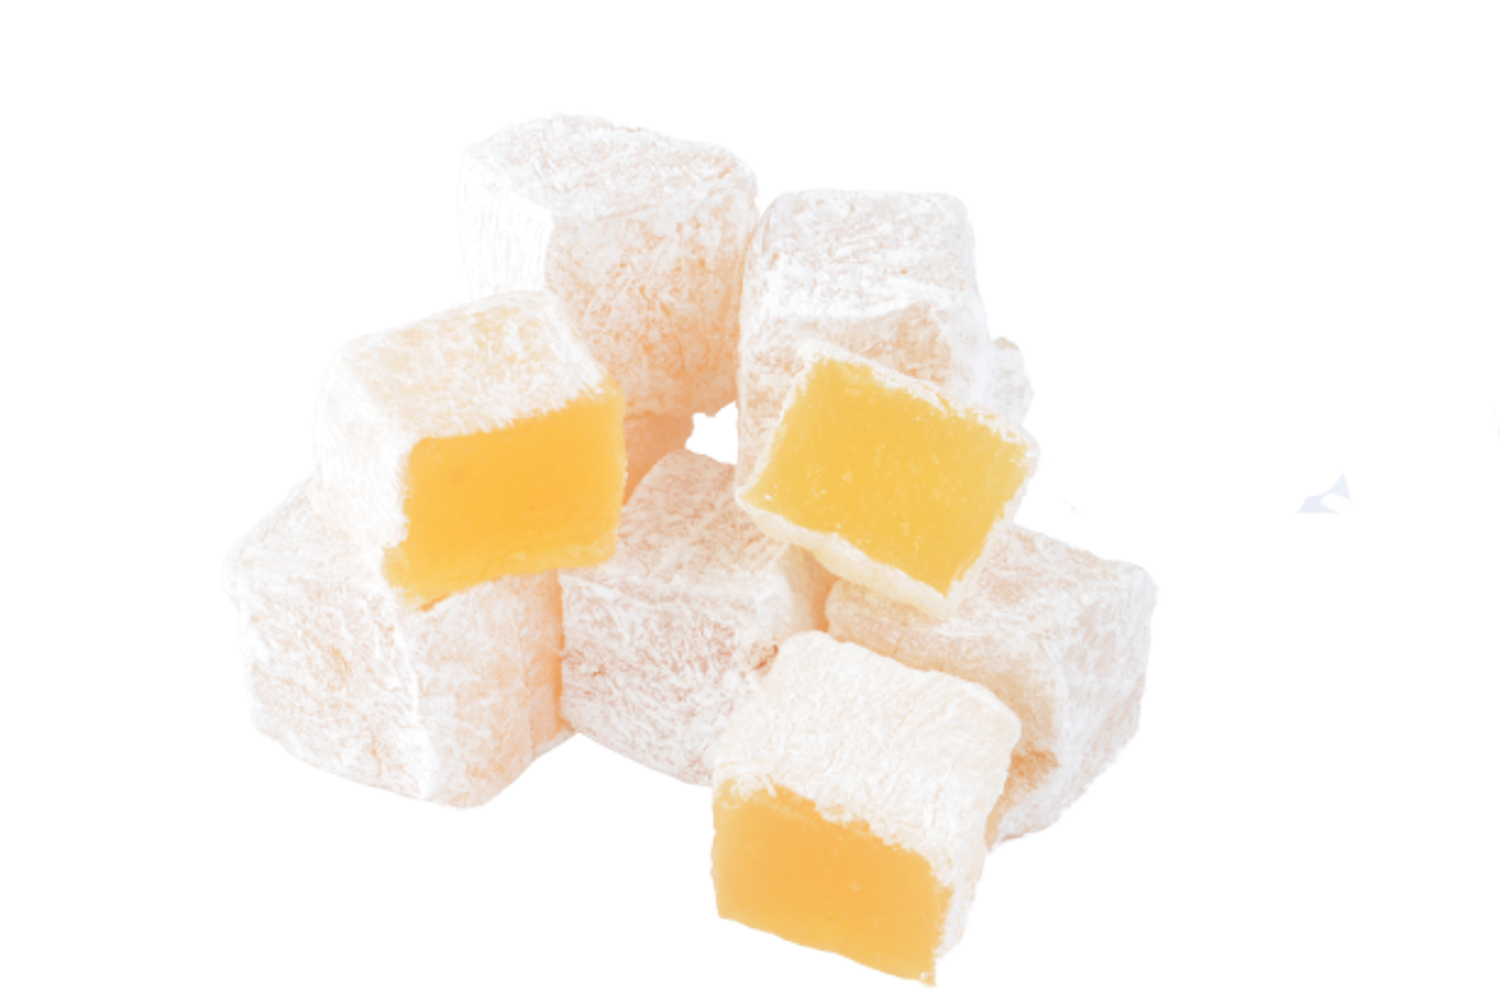 Picture of MEVLANA TURKISH DELIGHT PLAIN